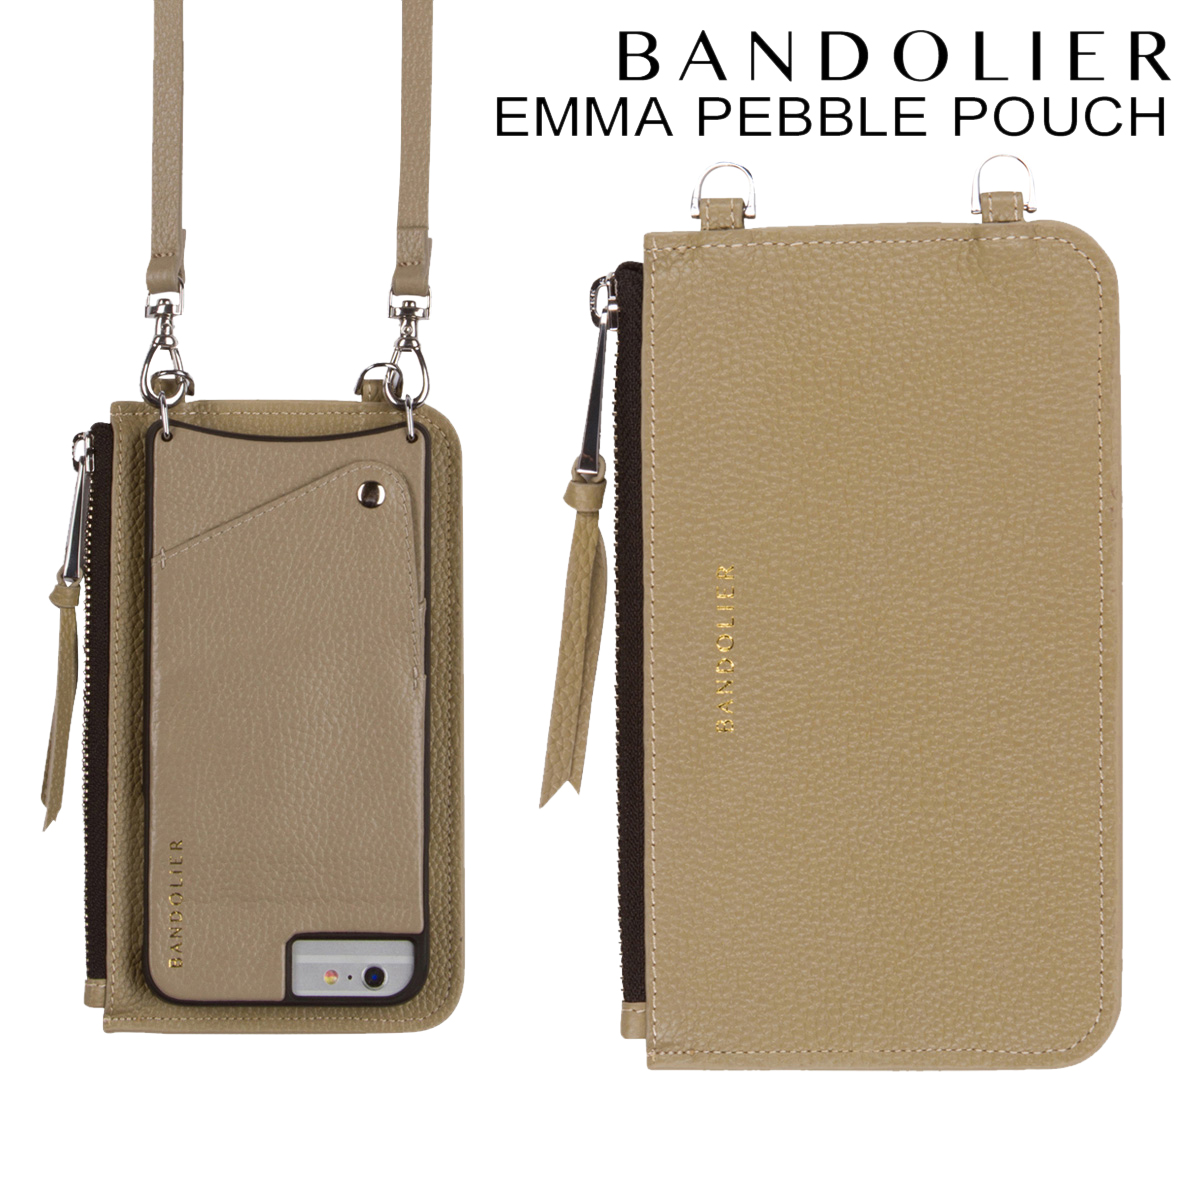 Messing Online Shop Band Re Yeah Bandolier Porch Smartphone Case Emma Pouch Fall 17 Leather Men Gap Dis Load Planned Shinnyu Load In Reservation Product 10 27